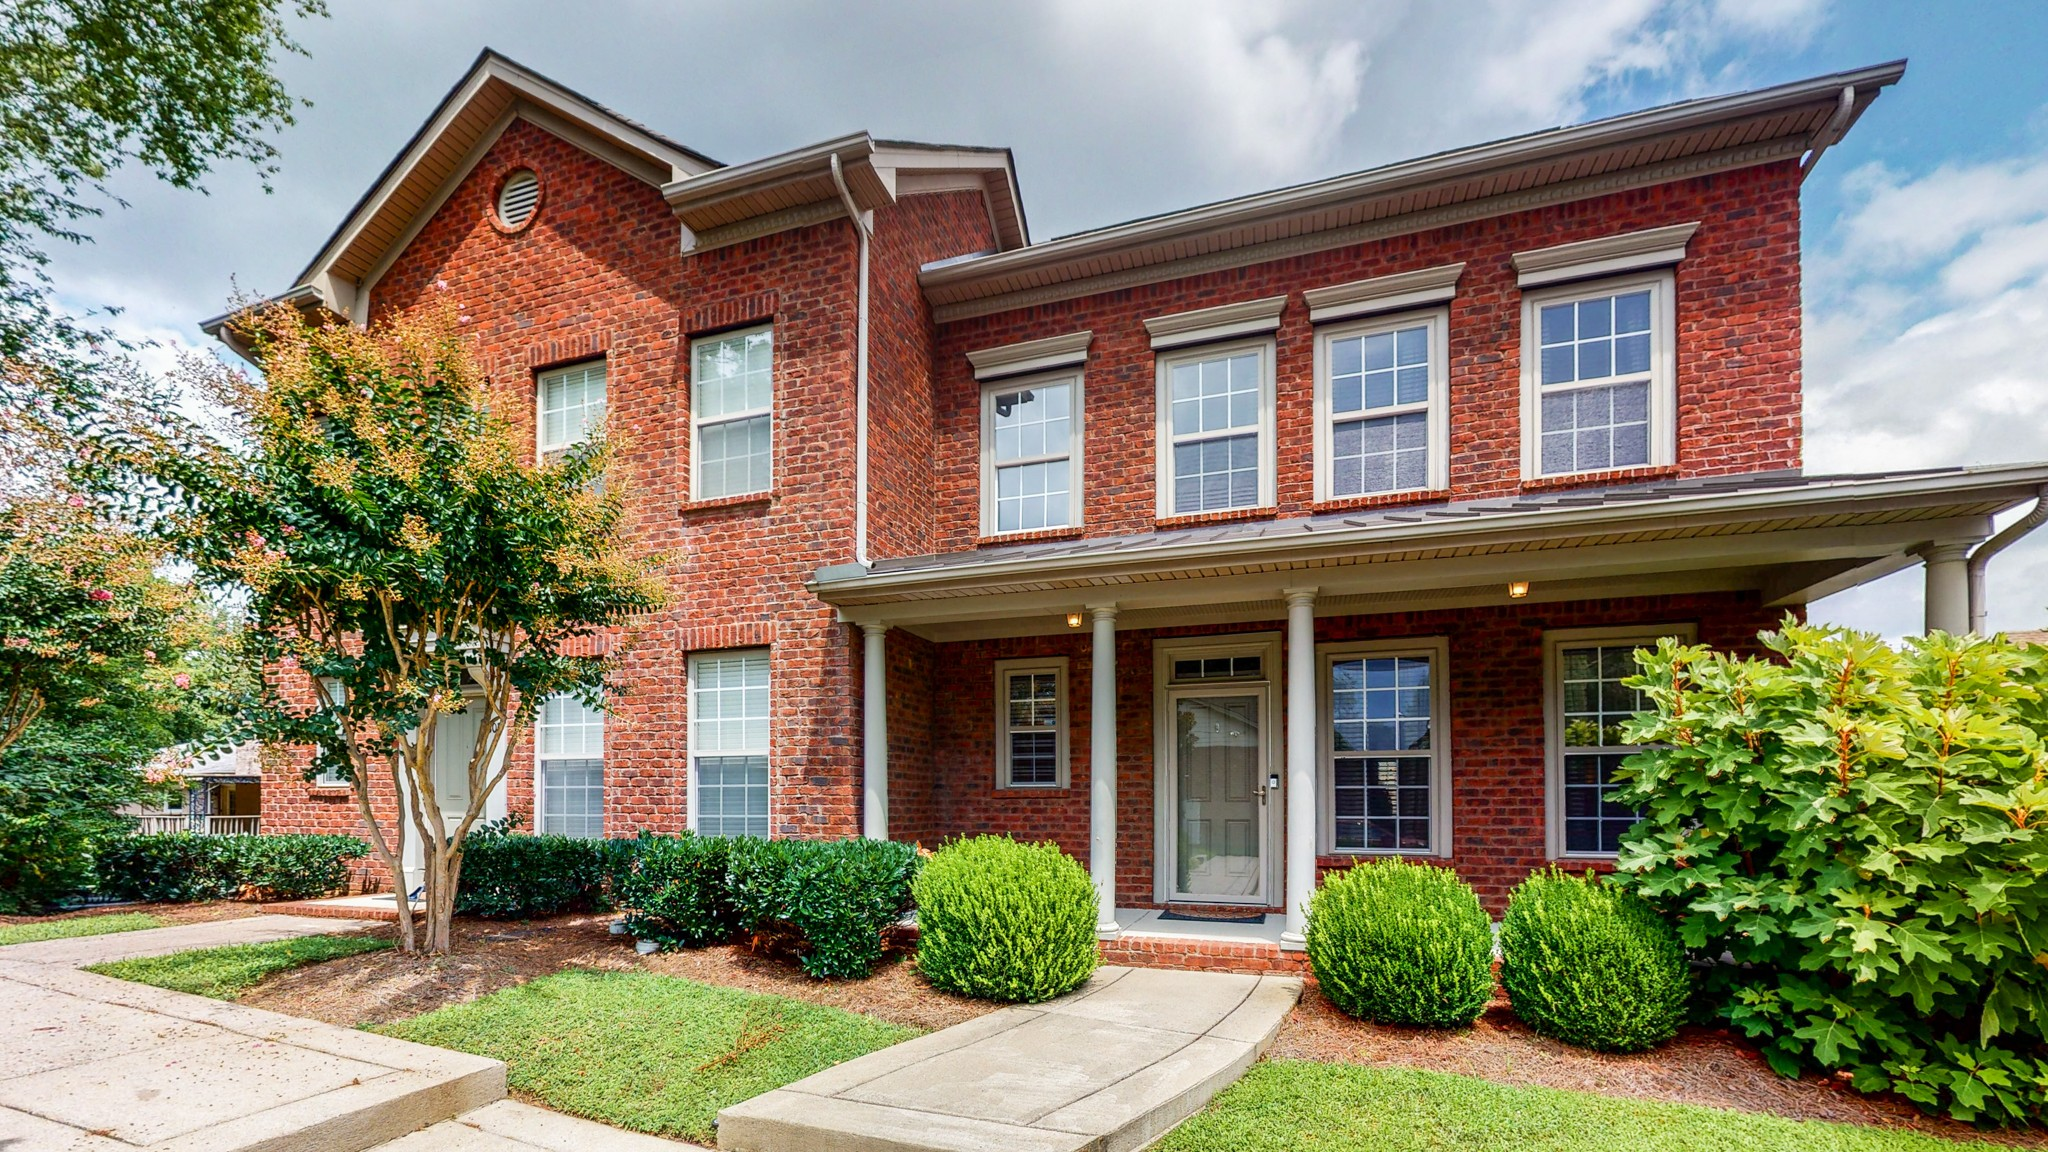 Attractive home with spacious primary bedroom on main level.  Home offers a total of 3 Bed 2.5 Bath with detached 2 car garage, covered front porch and patio. All appliances to remain. 5 minutes from I 65 S & Old Hickory Blvd.  Walking distance to restaurants.